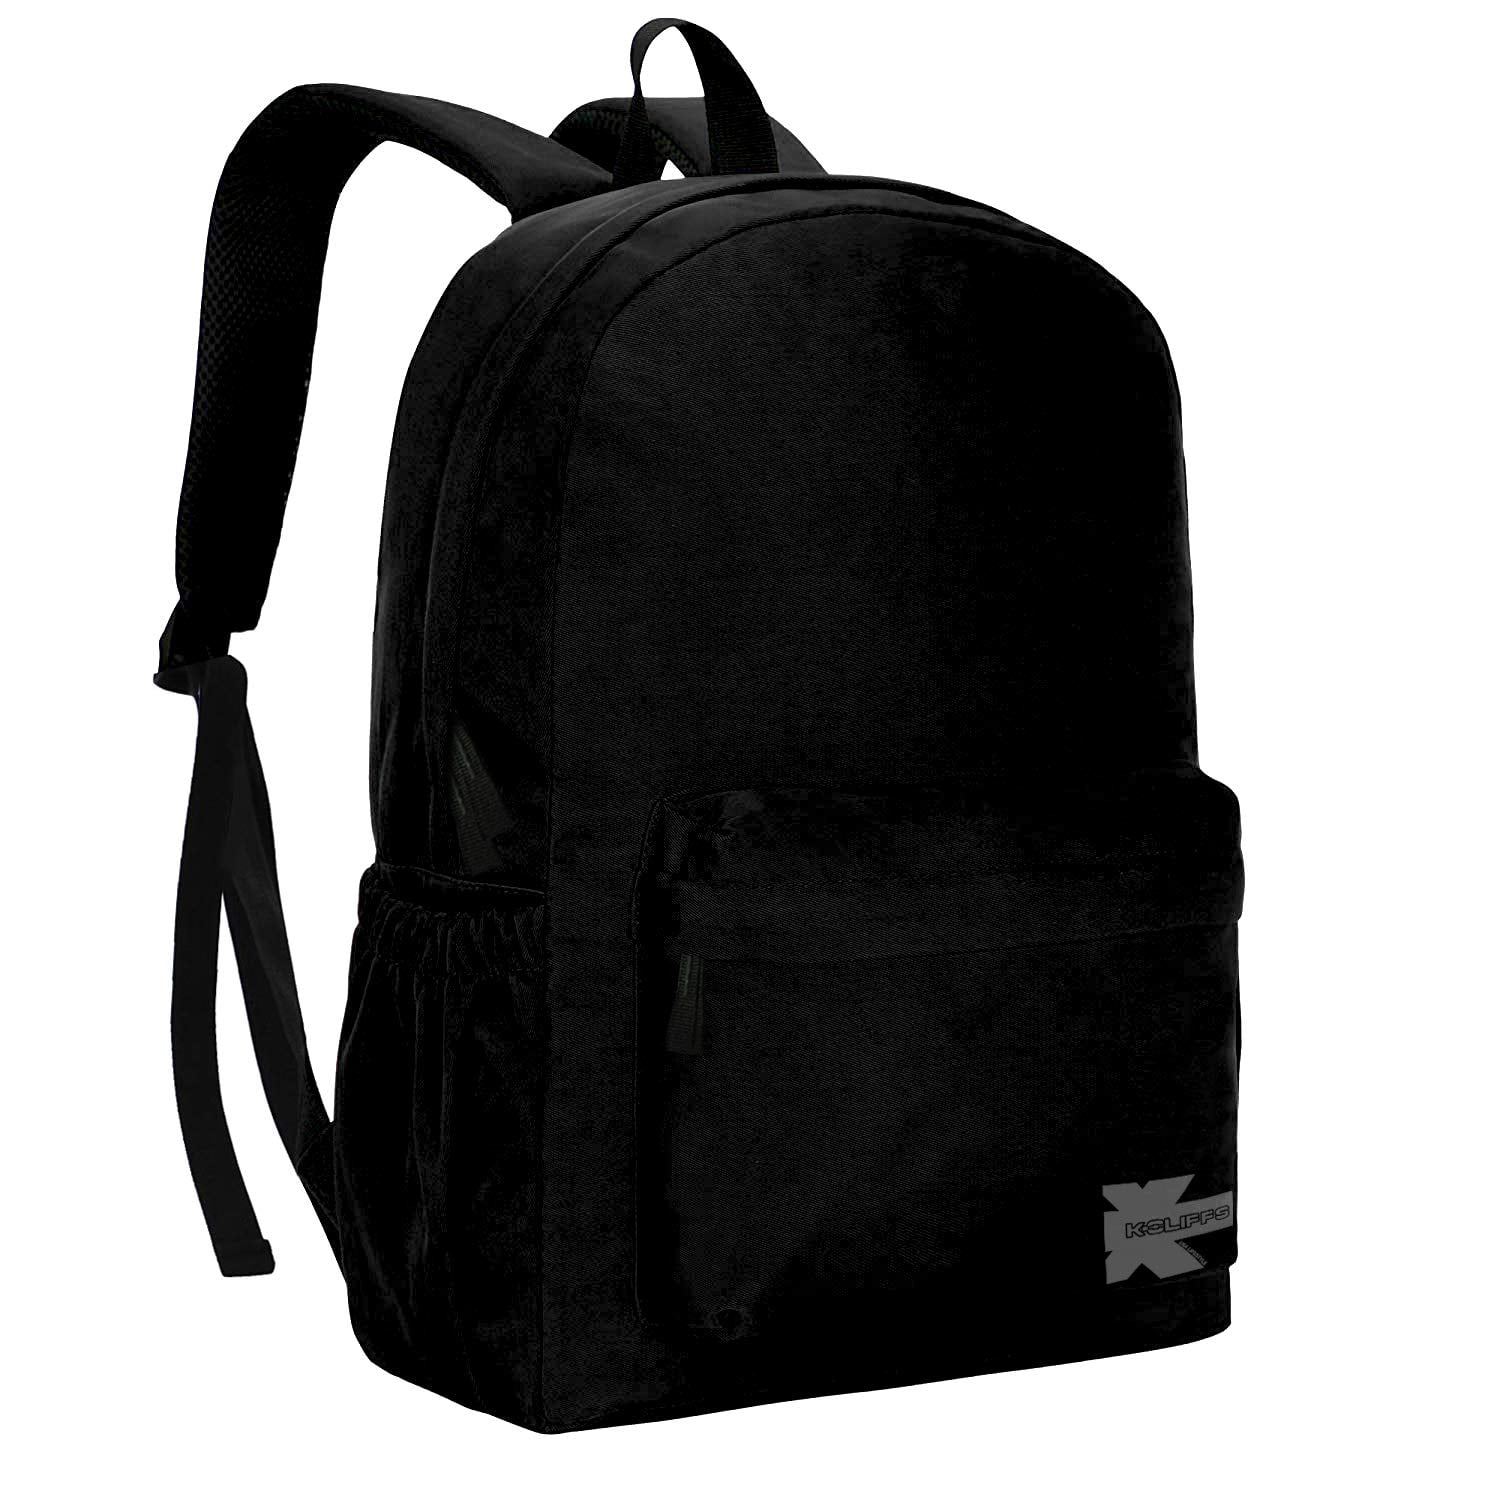 White Horse in the Winter Woods Black School Backpack /& Pencil Bag